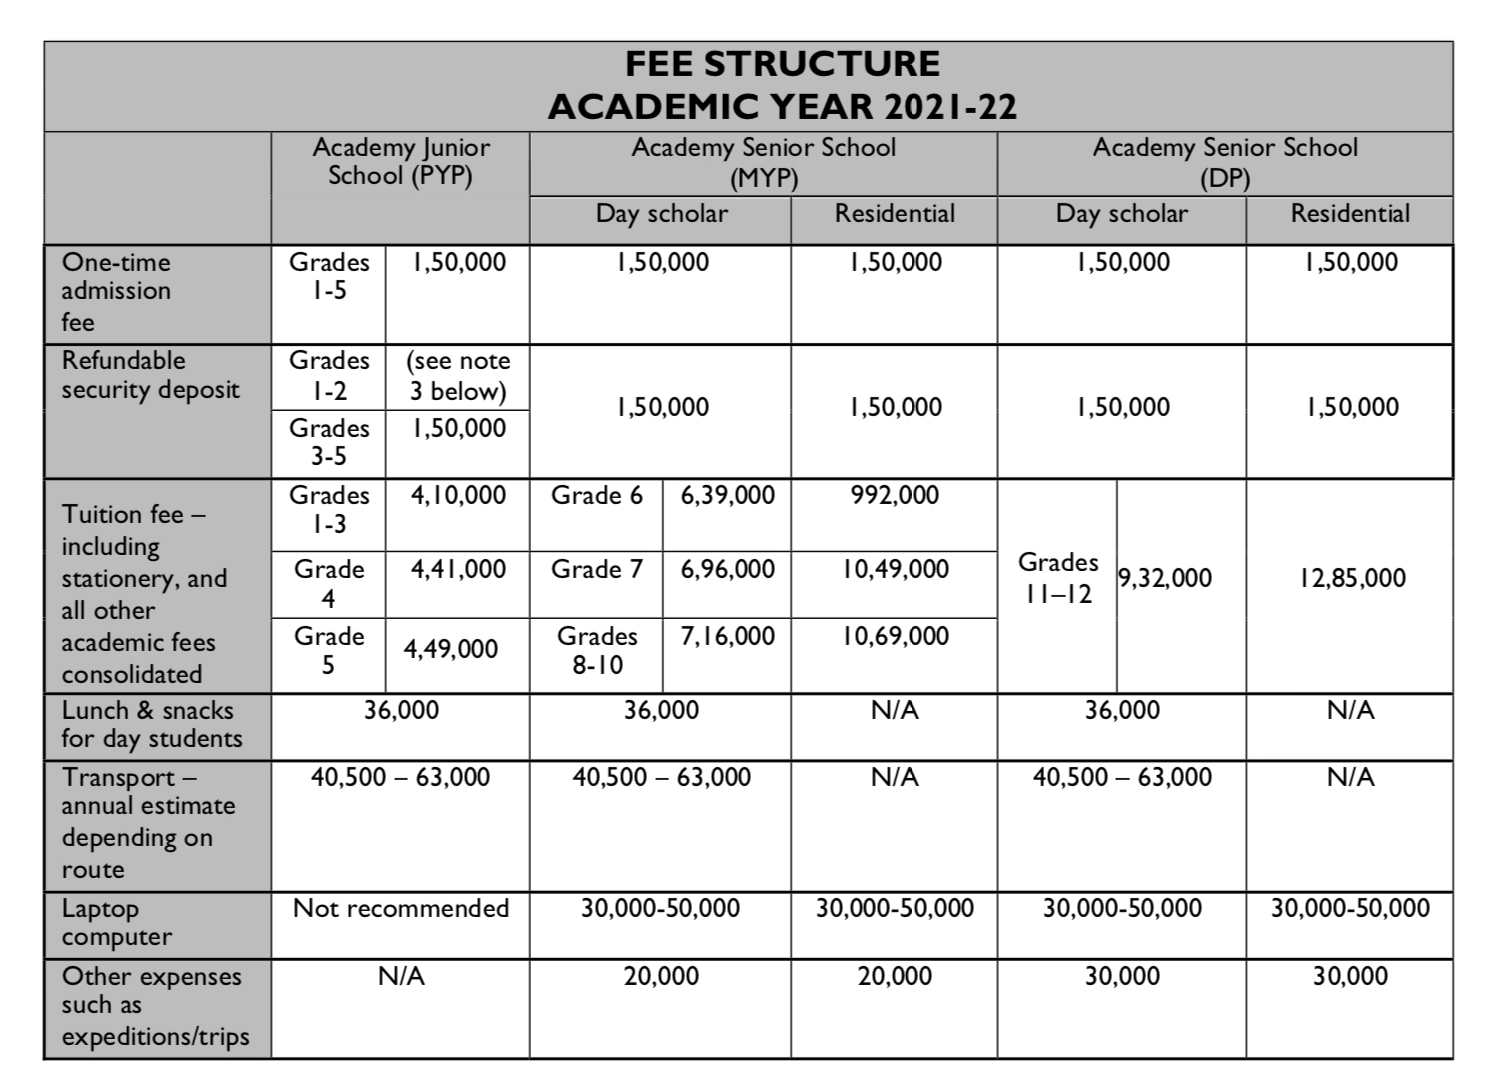 Hyderbad Fee Schedule 2021-2022